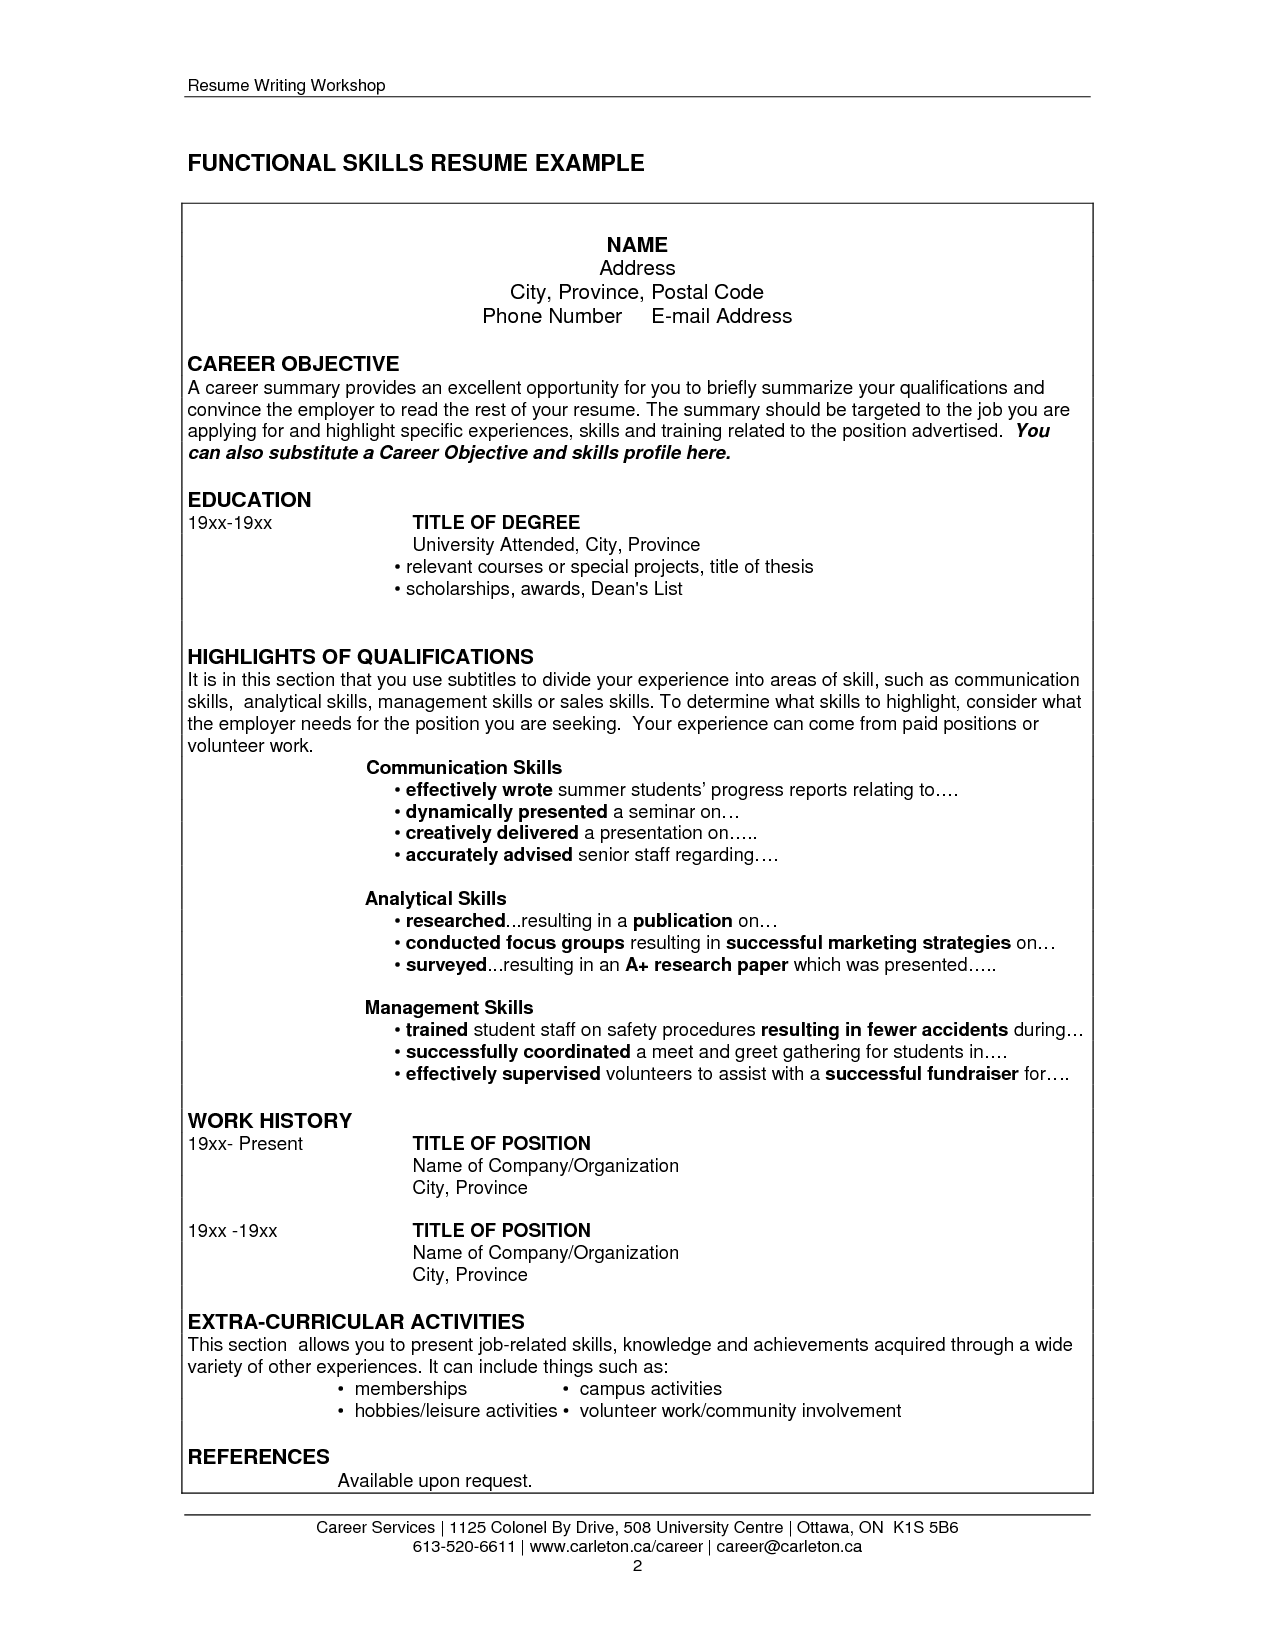 Simple Resume Templates Image Result For Skills Resume Format  Business  Pinterest